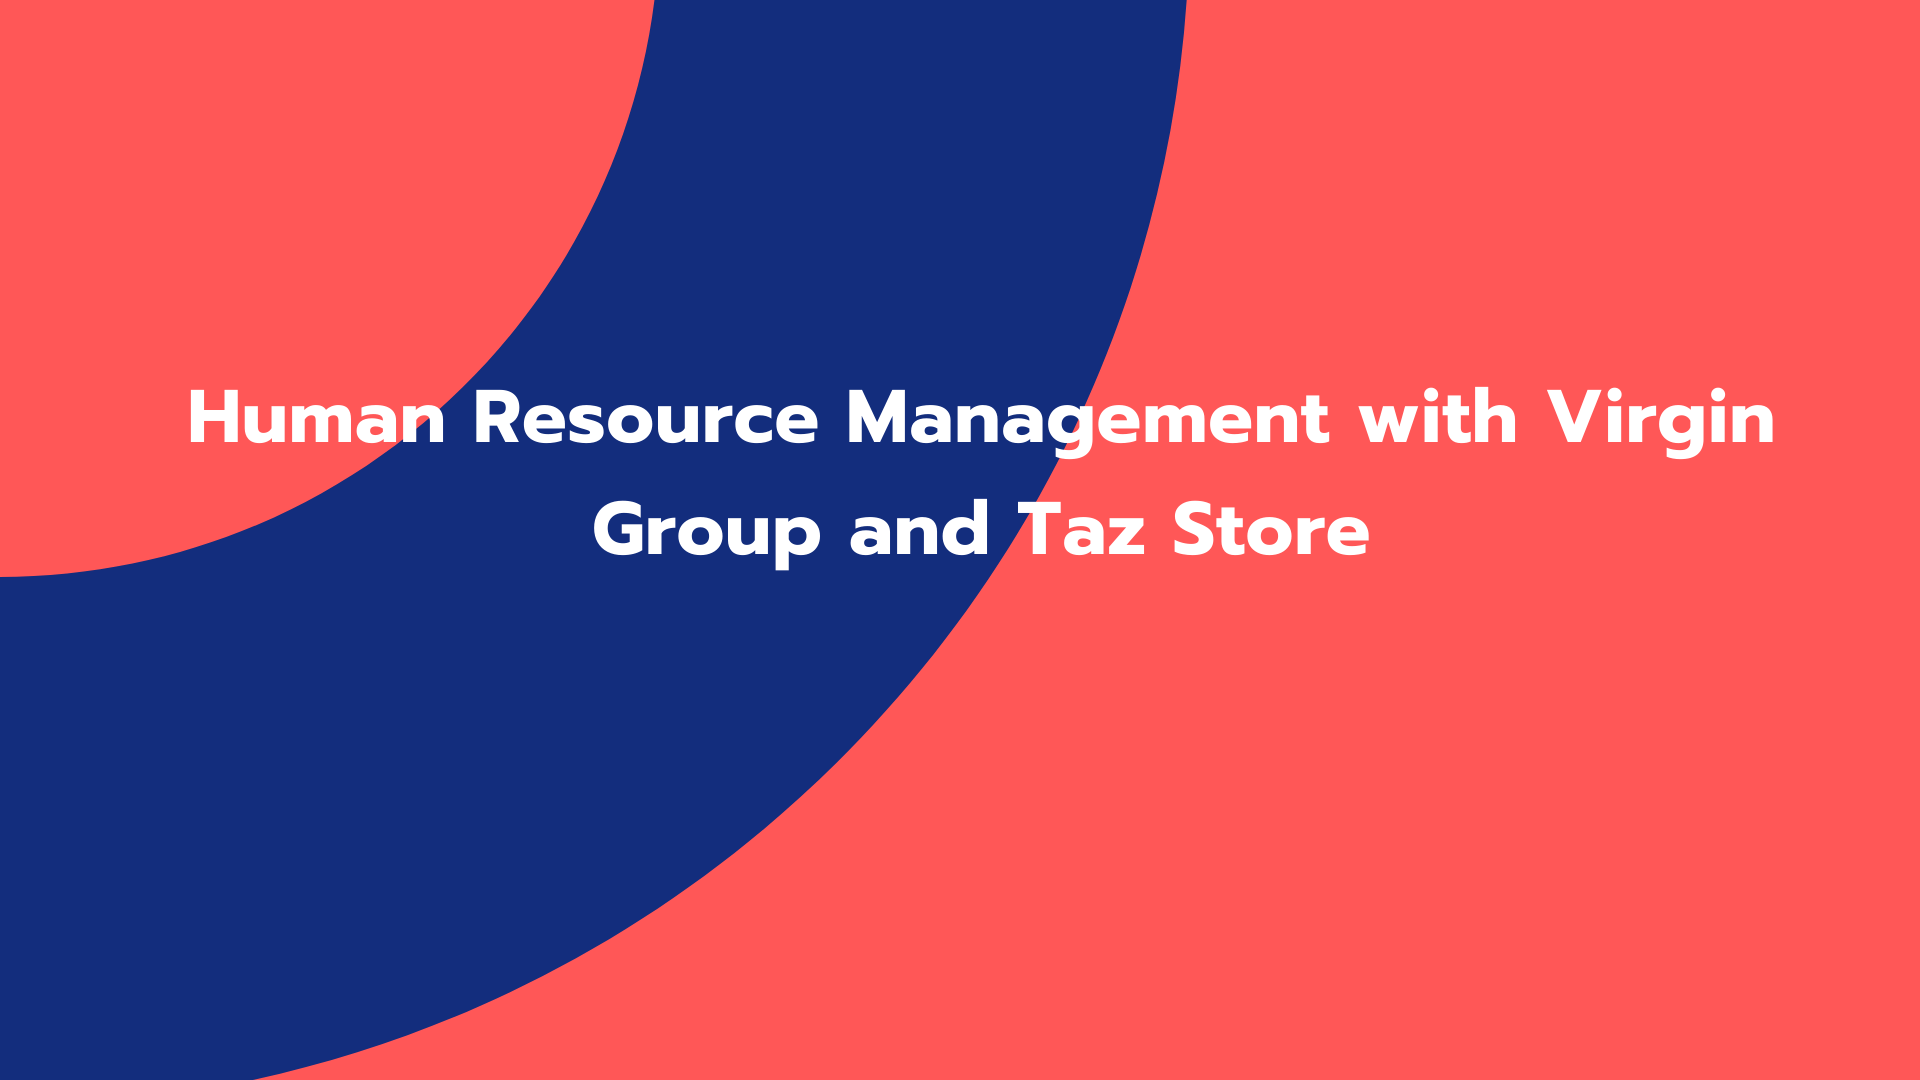 Human Resource Management with Virgin Group and Taz Store